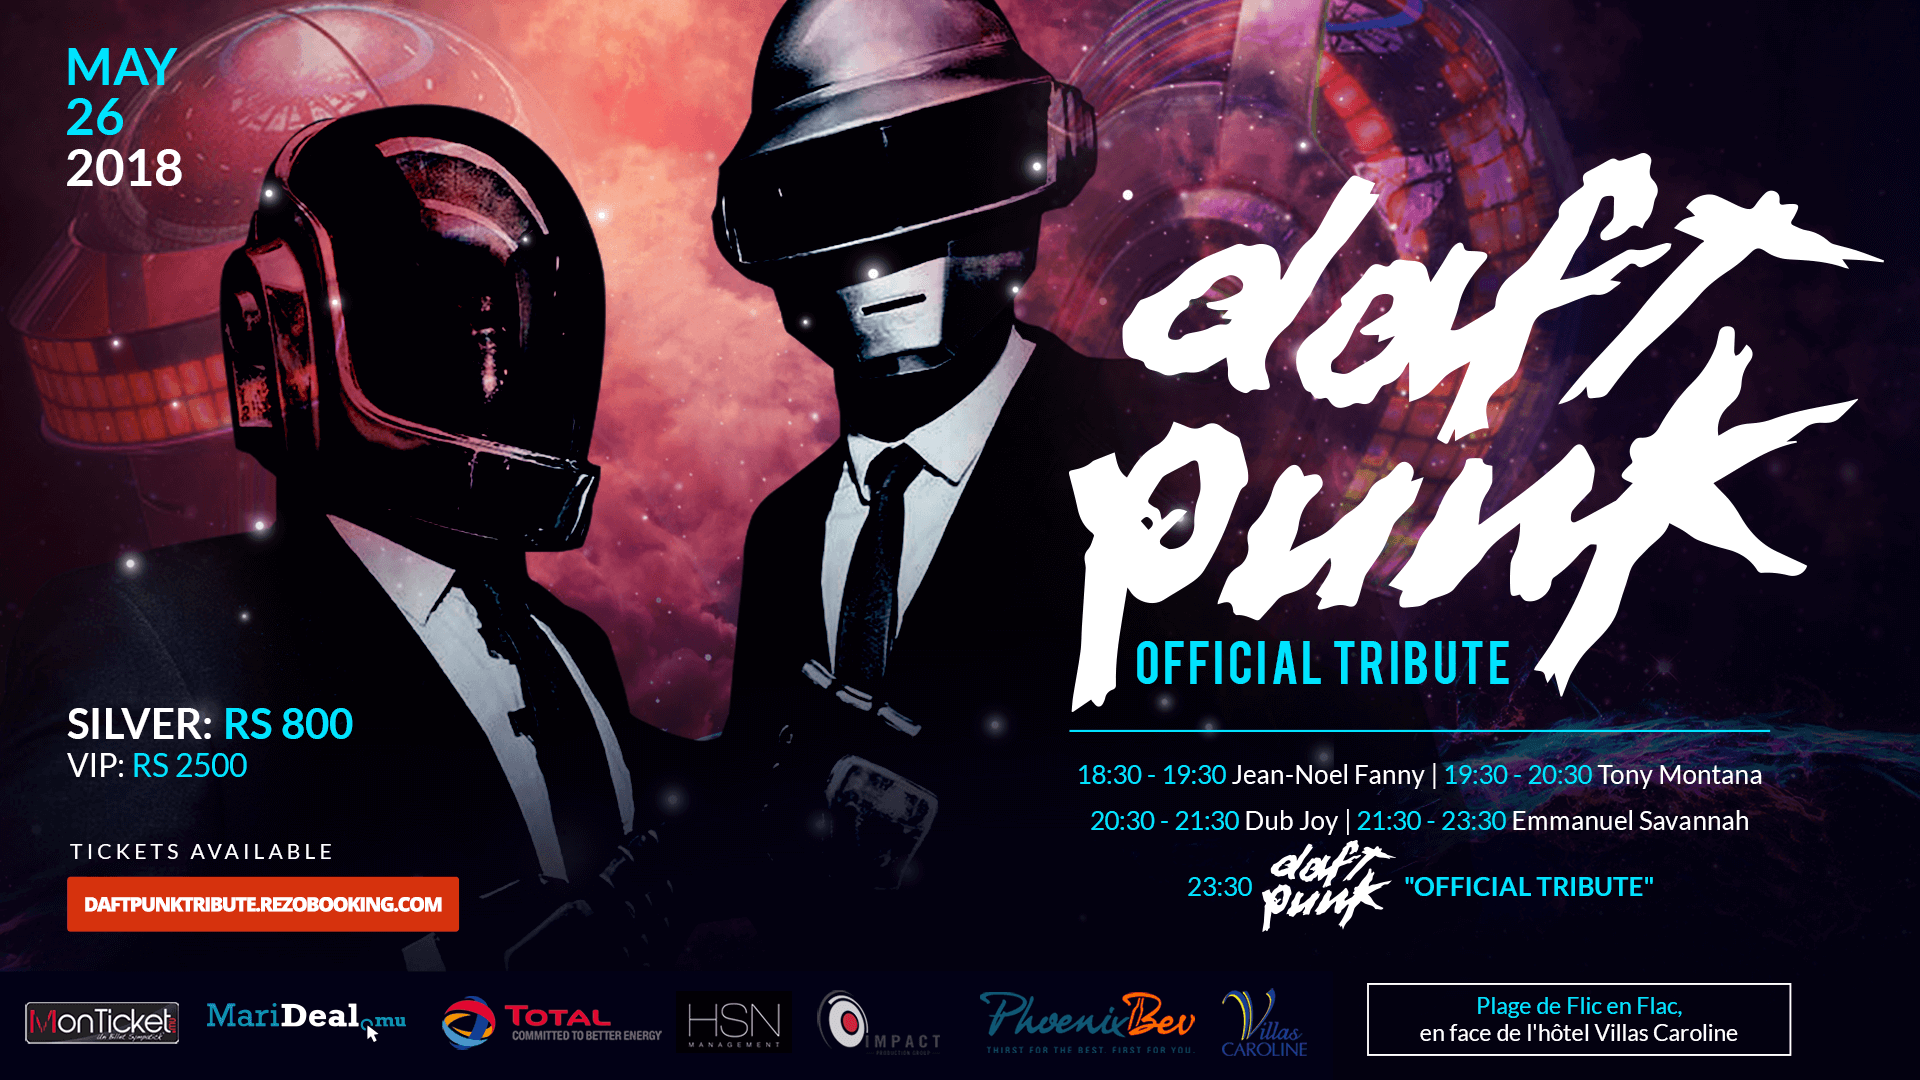 daft-punk-official-tribute-rezobooking_V3